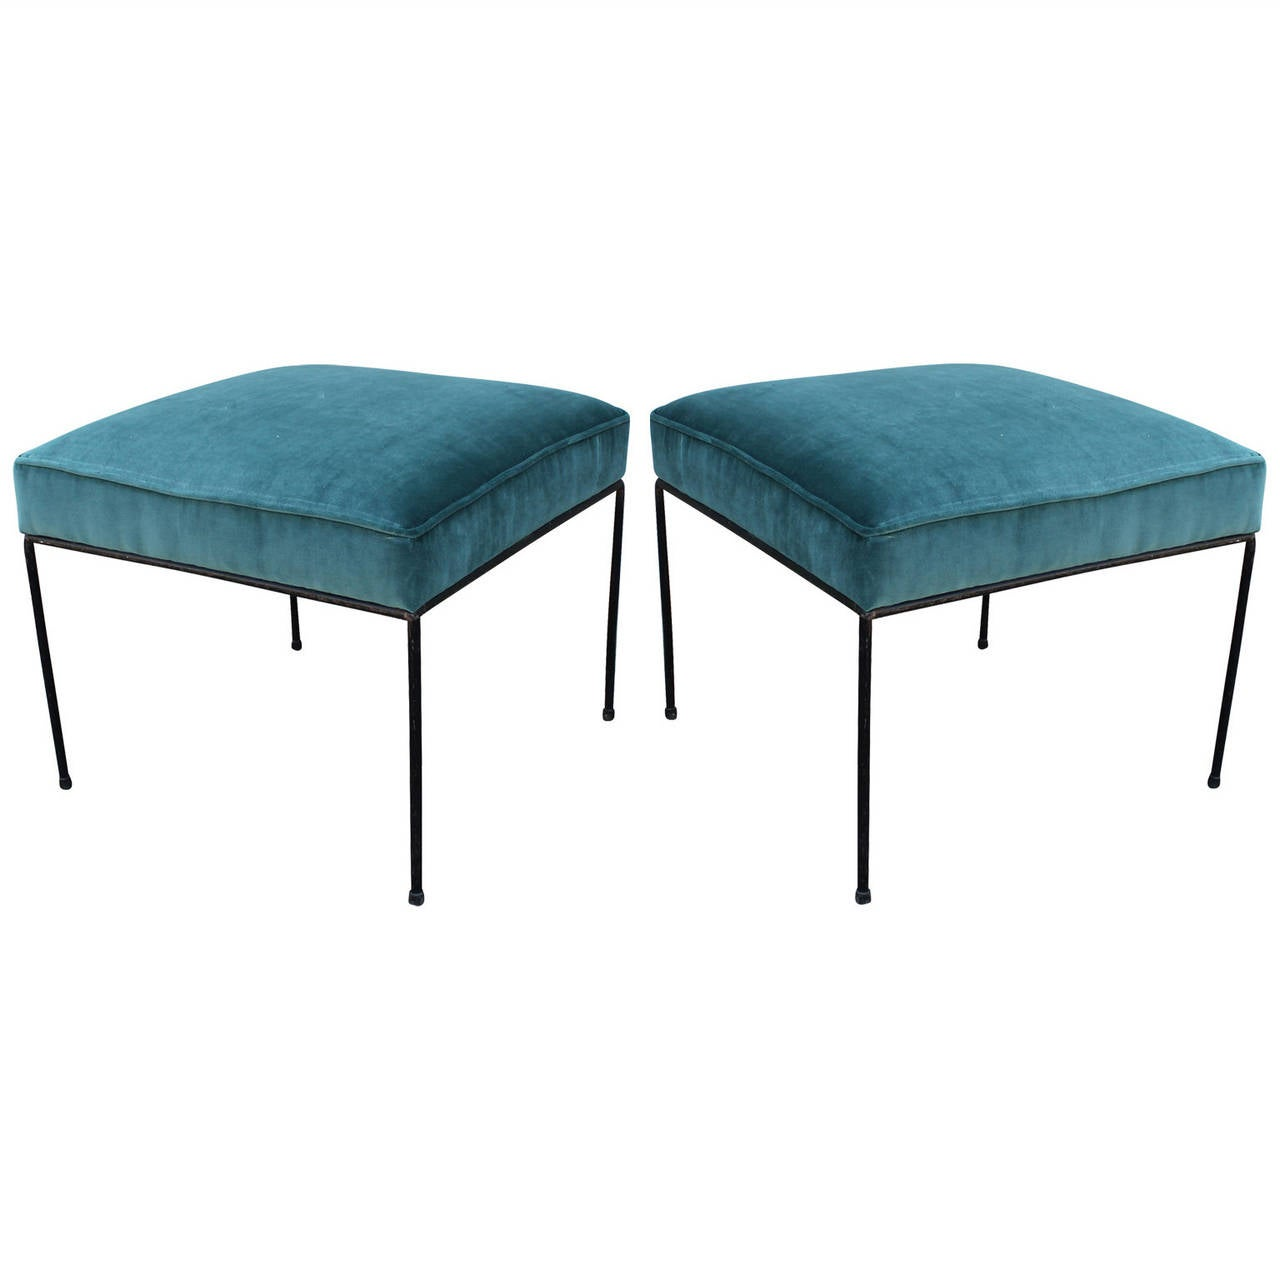 Pair Of Paul Mccobb Wrought Iron Stools In Teal Blue